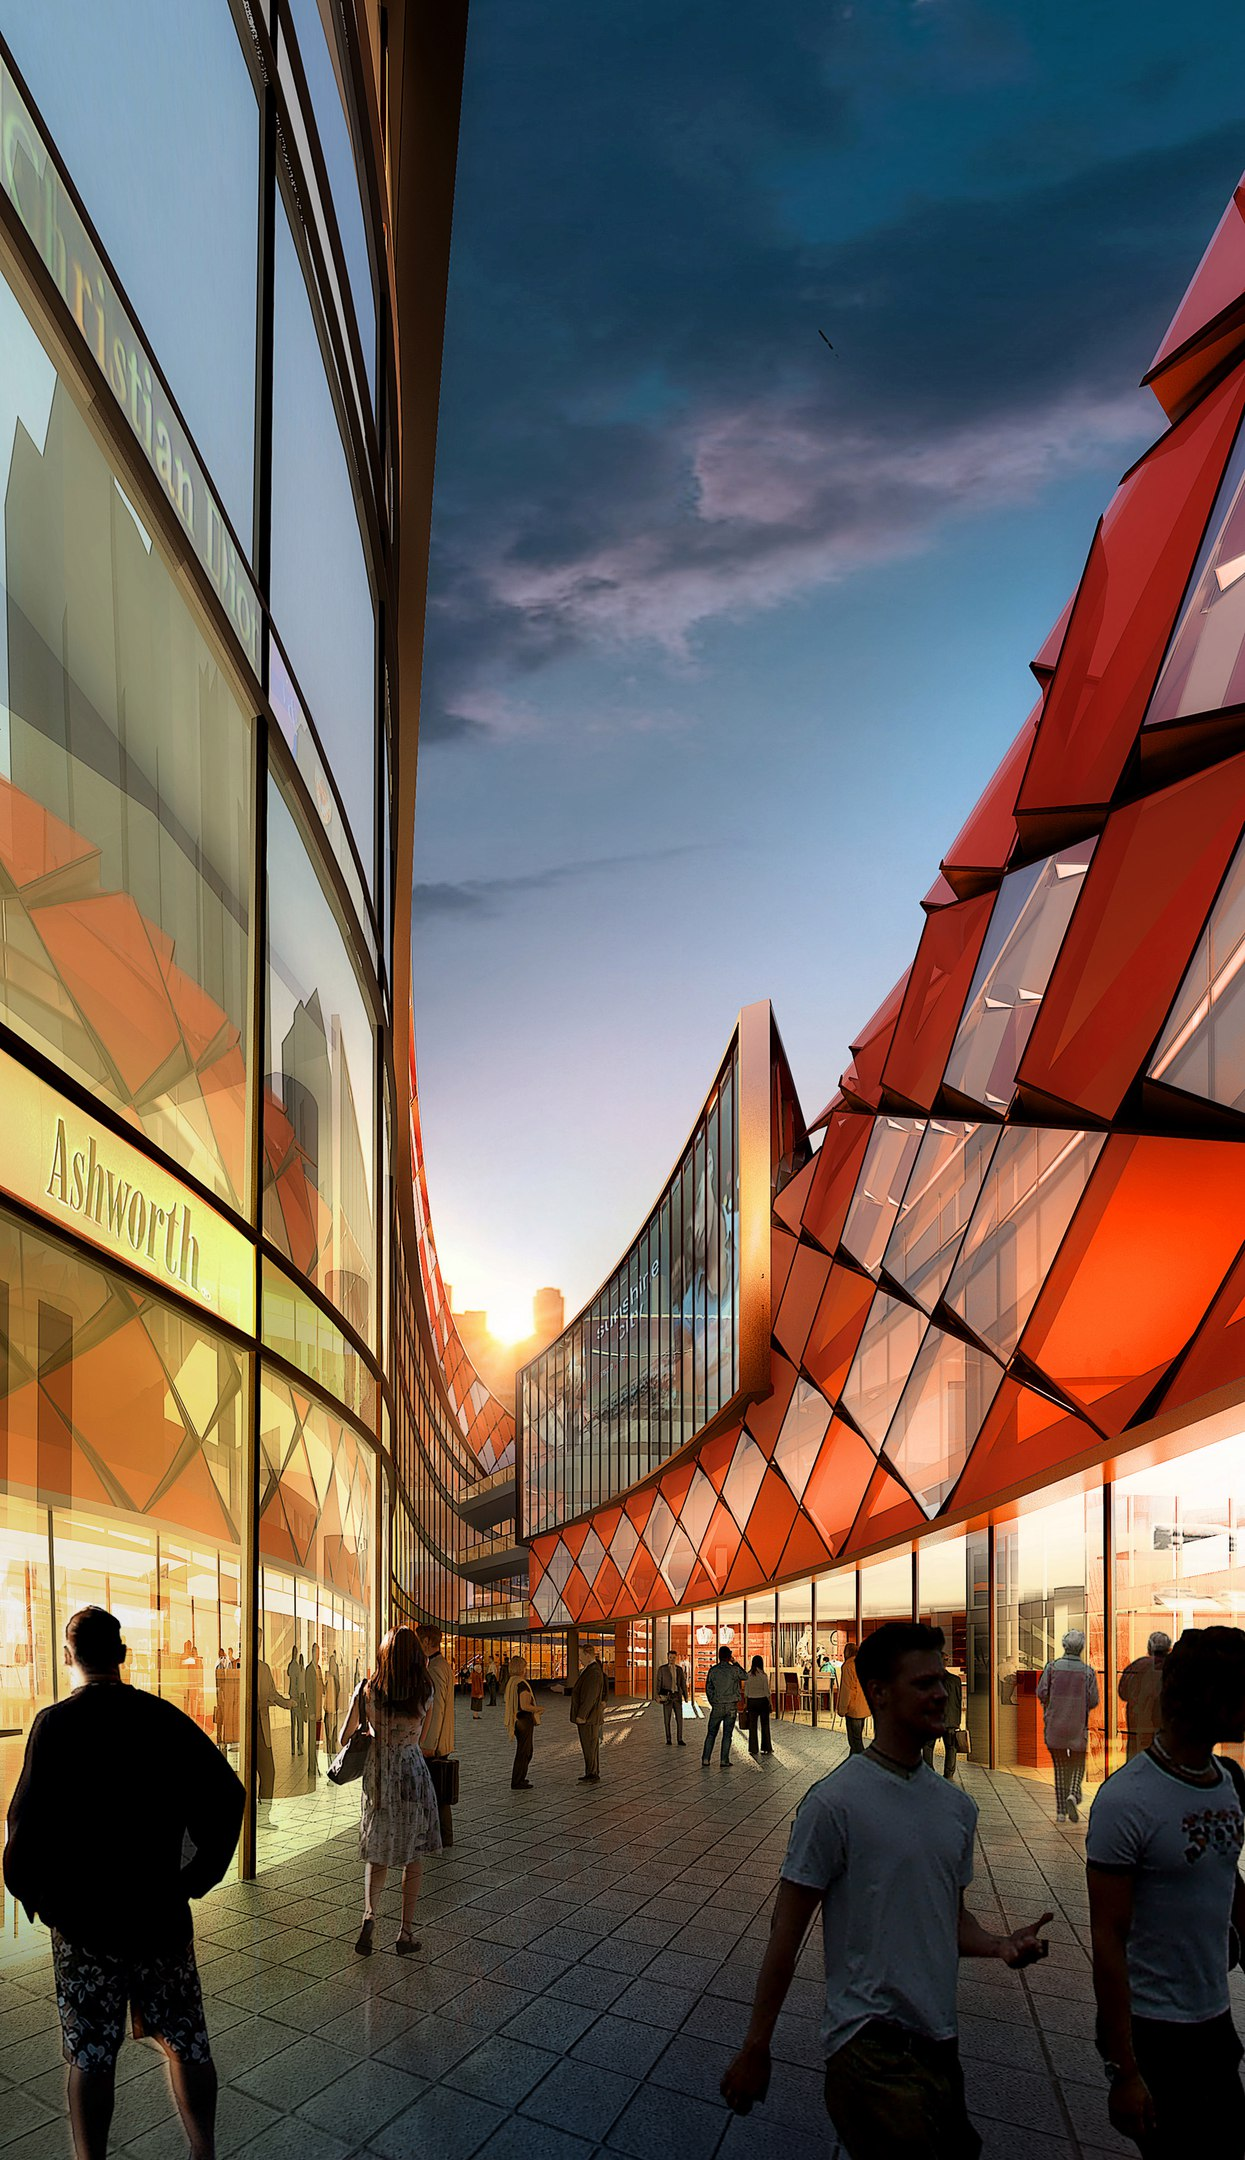 Sunlay Design Group's Folklore-Inspired Retail Center Will